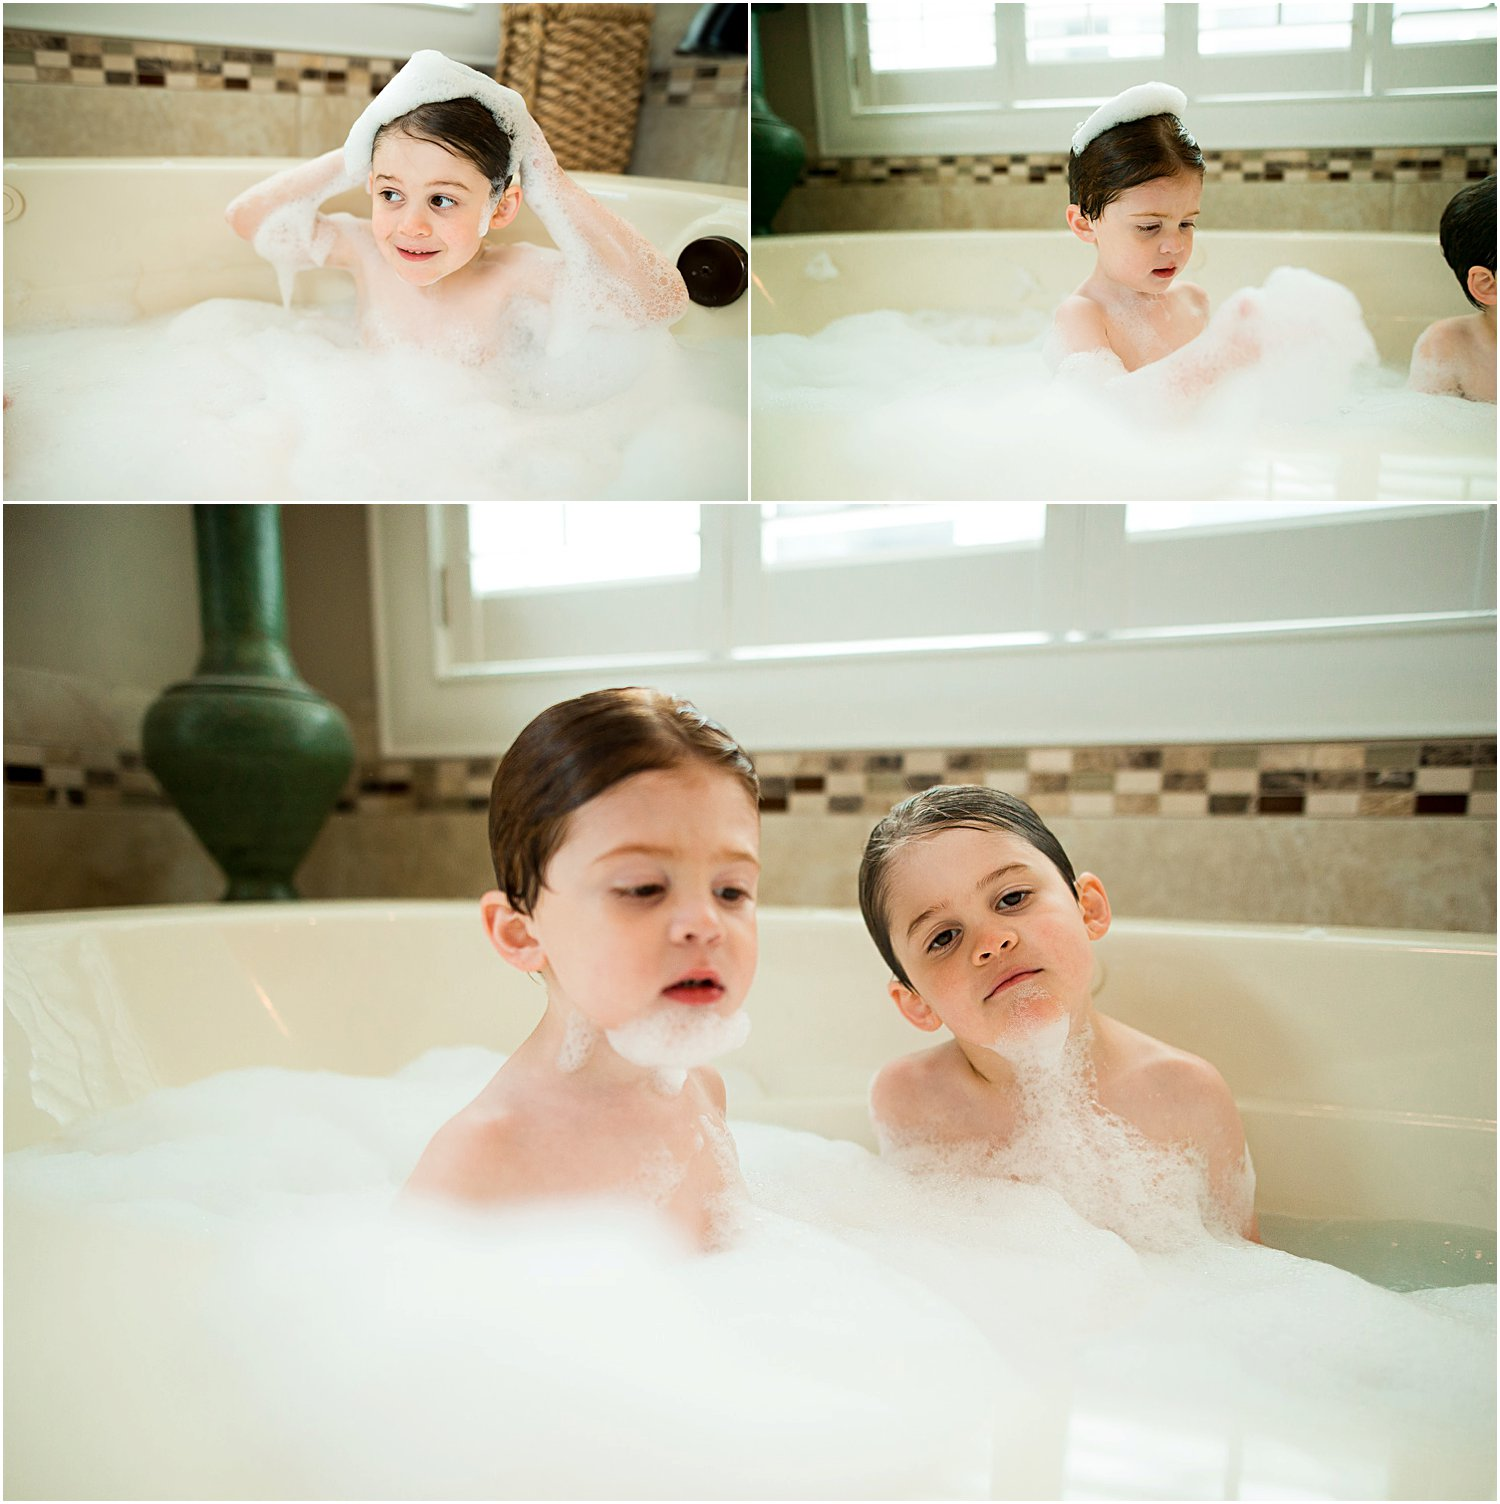 playing in a bubble bath